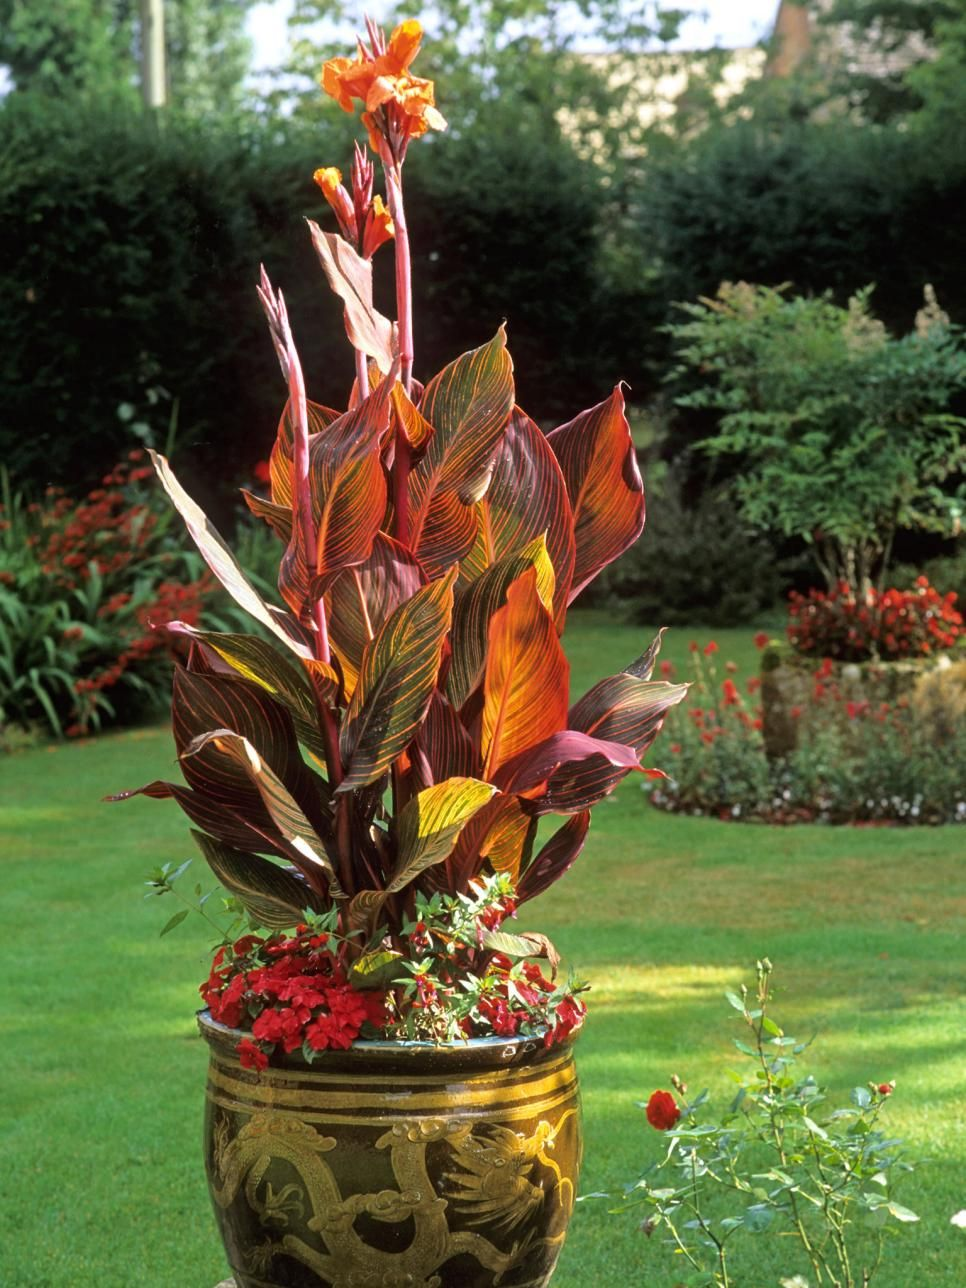 Using Large Garden Pots | Large flower pots, Plants and Large garden ...